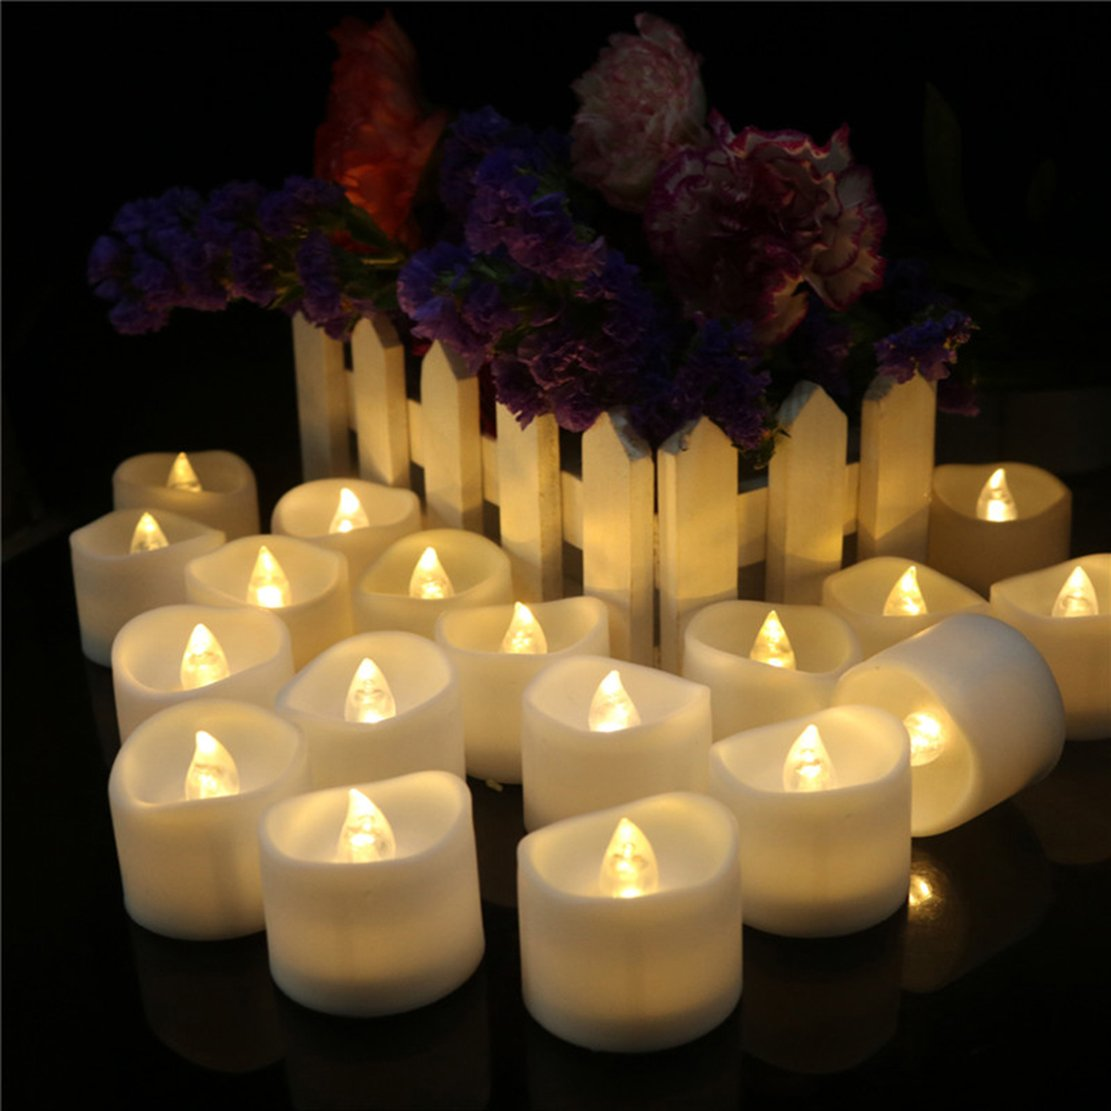 200 Hours Led Mini Tea Light with Timer (6 Hrs On 18 Hrs Off) Flameless Warm White Flickering Fake Votive Candle Wavy Open Rustic Long Lasting Electric Timed Tealights Party Home Wedding Decor 96 PCS by Beauty Collector (Image #2)